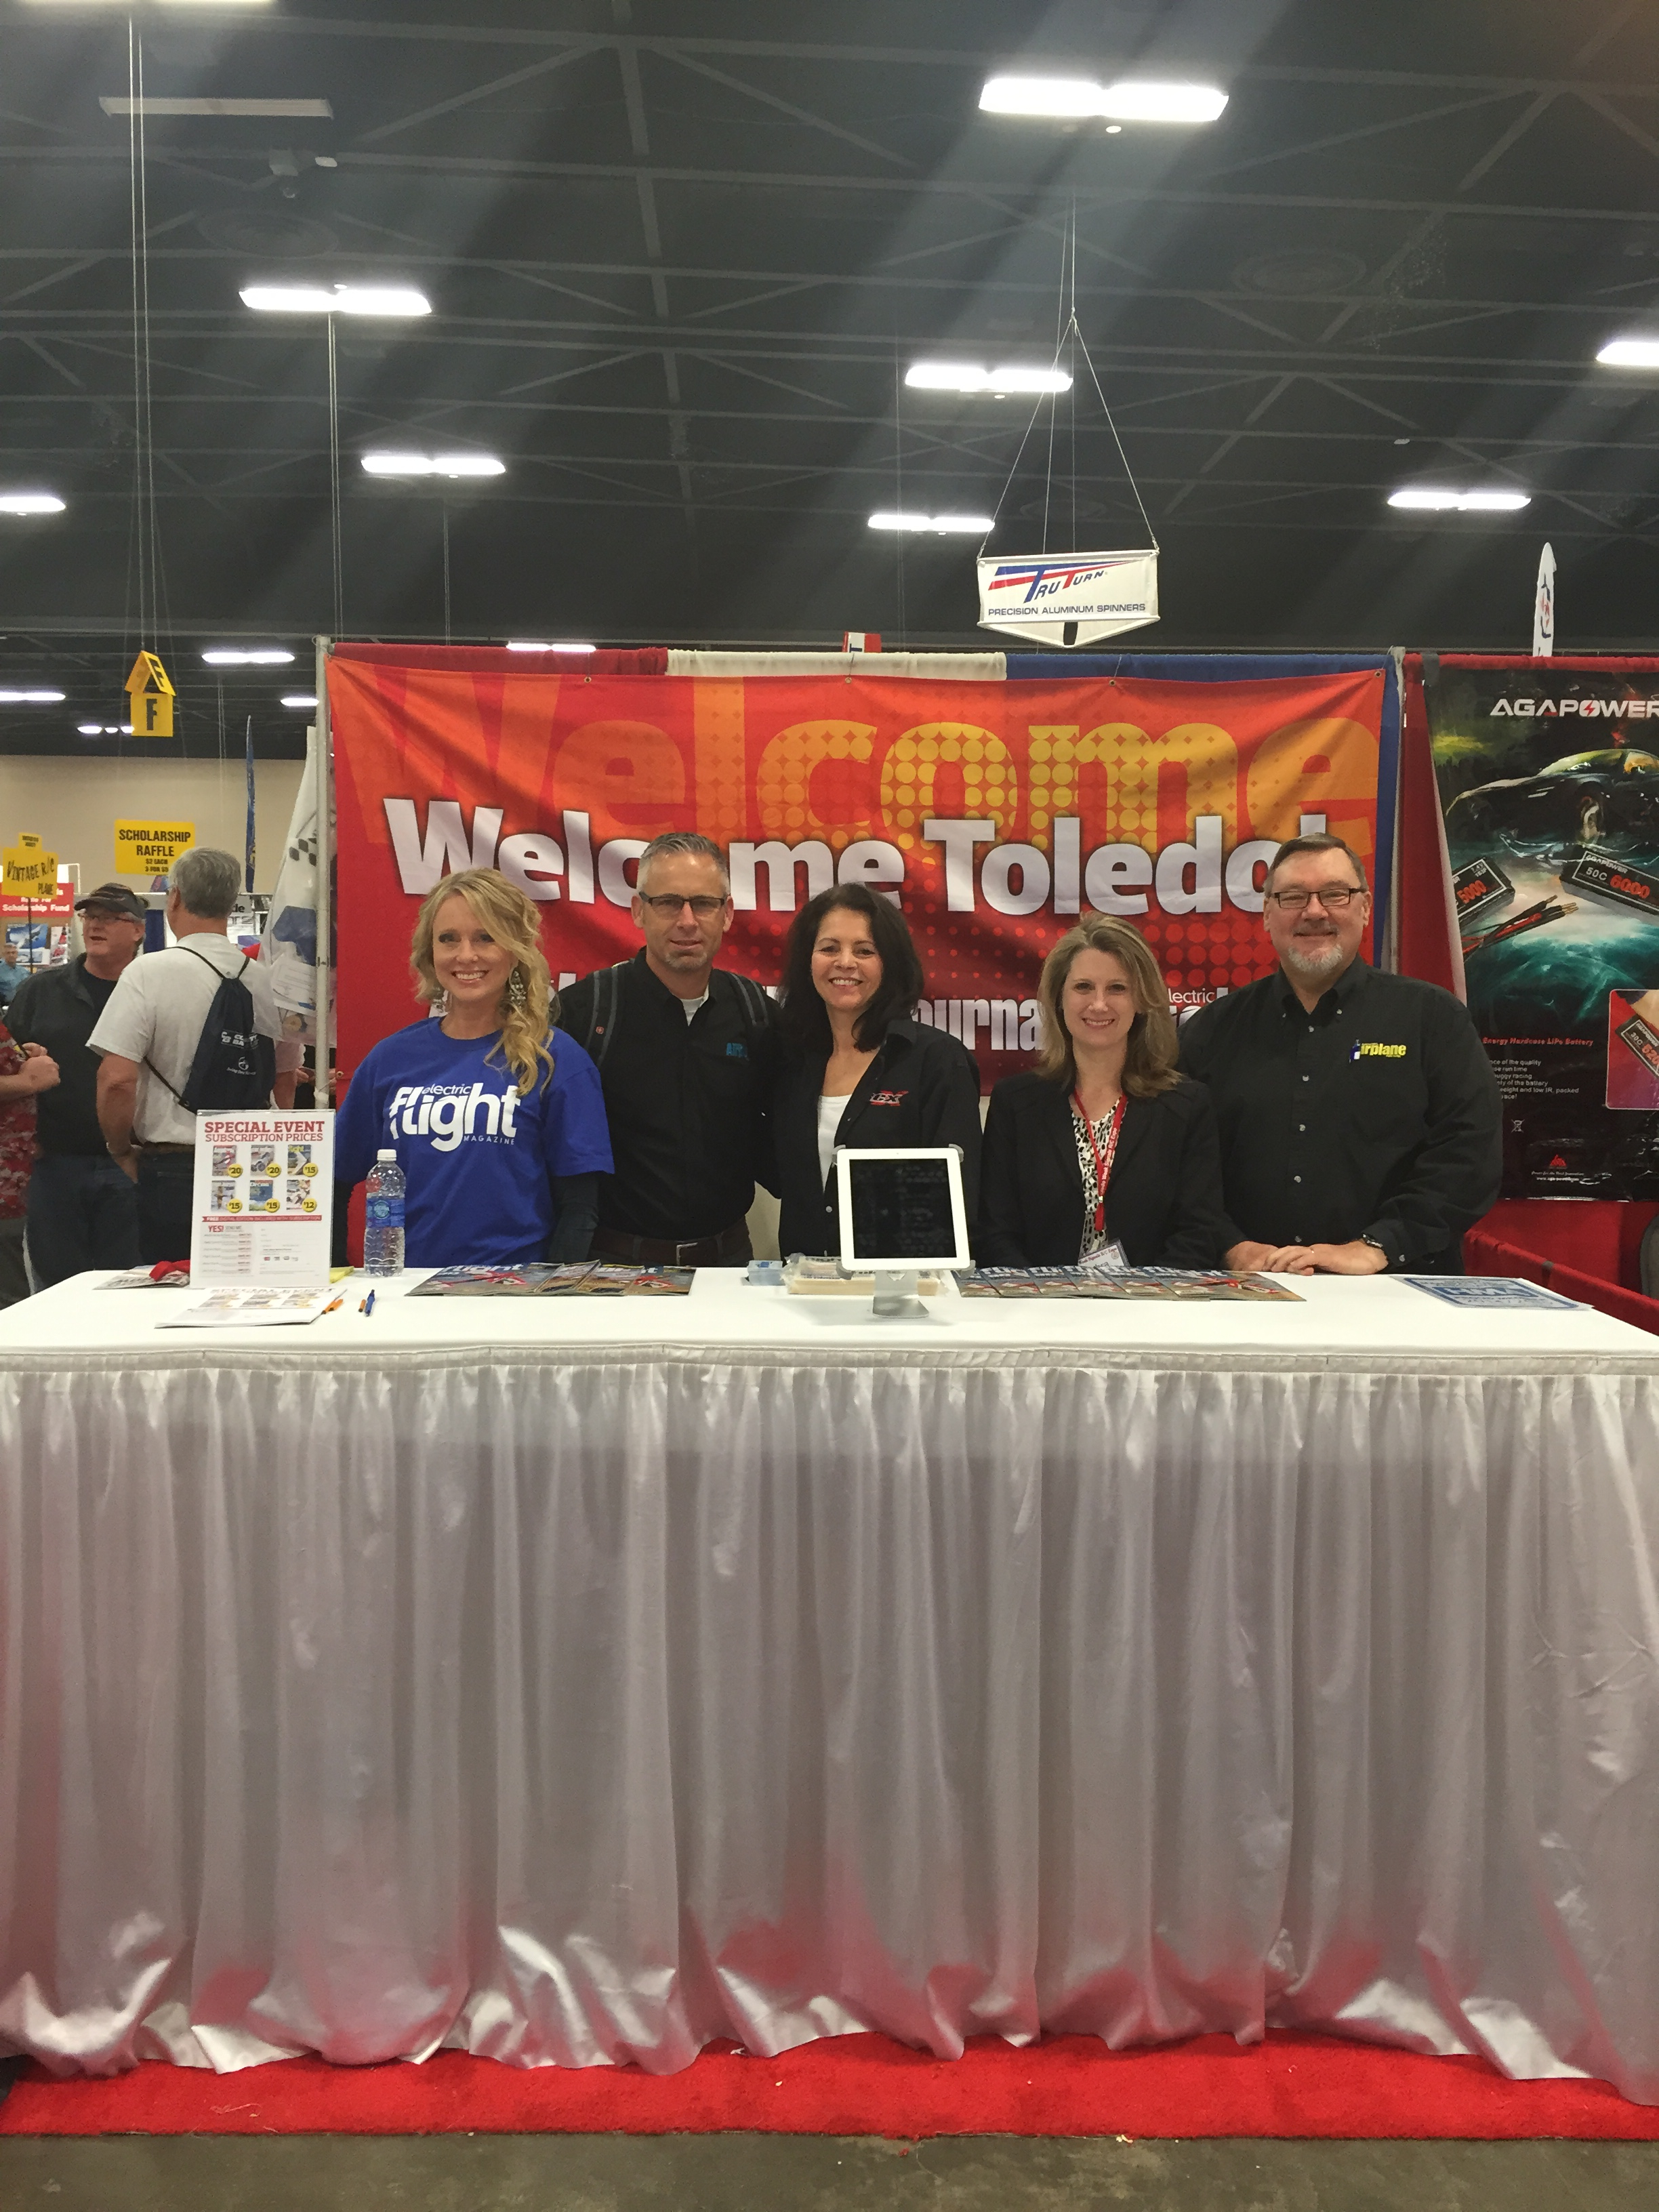 The Toledo Show: Air Age Media brings you all the Coverage!